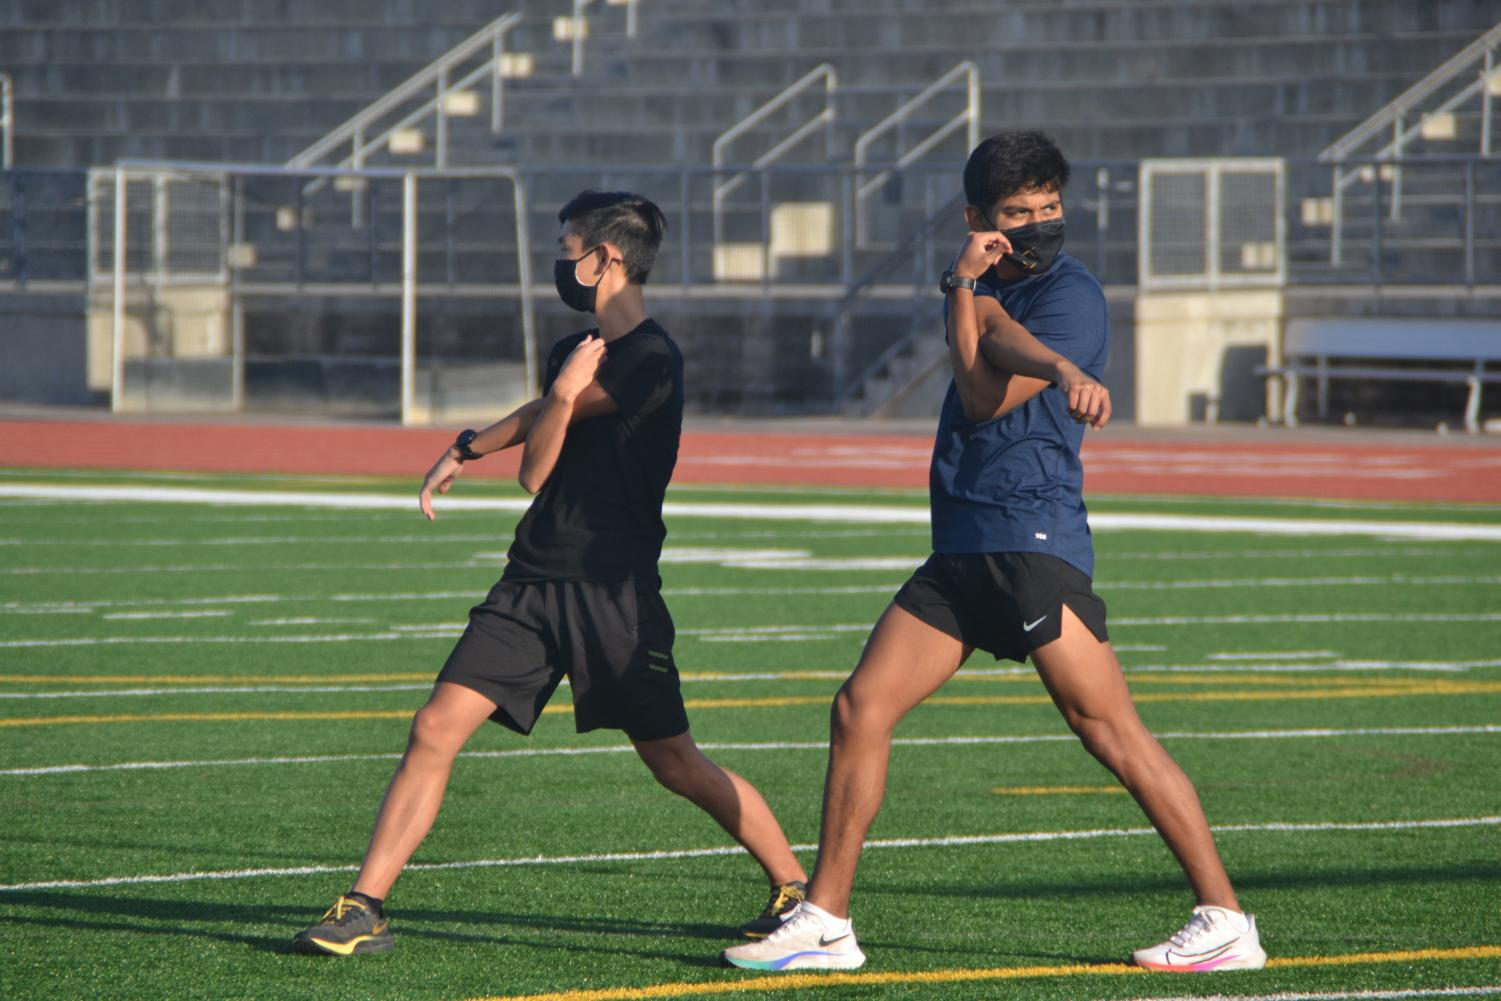 Jared Ho (11) and Nathaniel Lara (12) stretch after their warm up lap. Photo by Matthew Flores